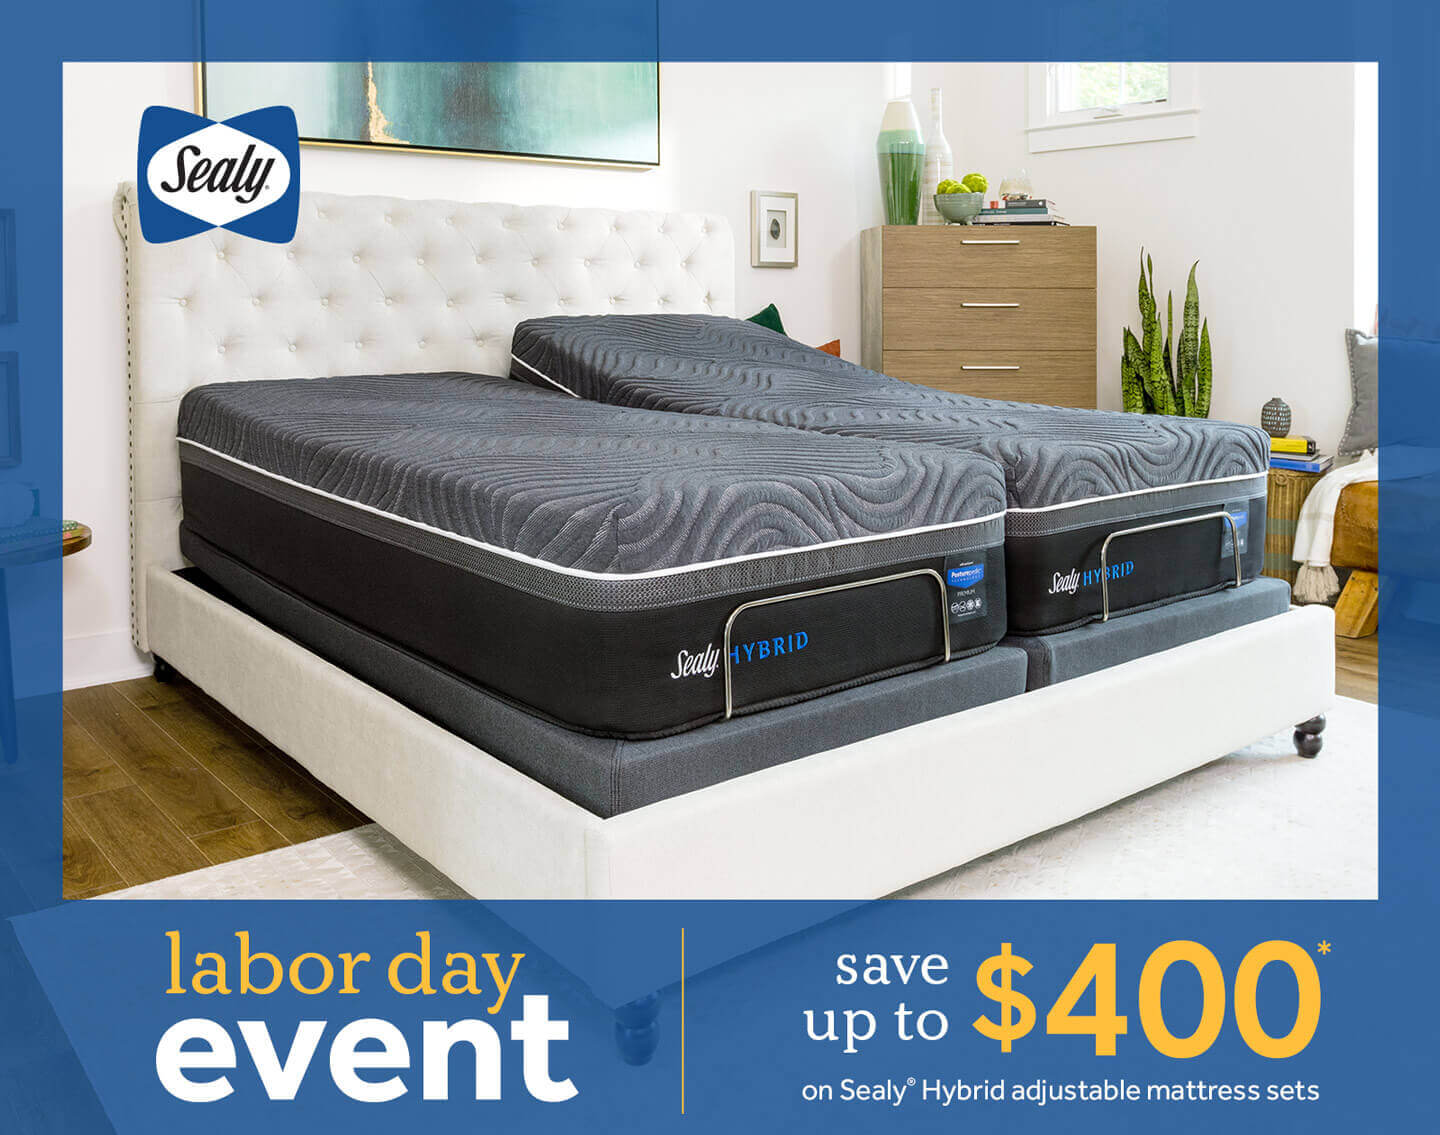 Sealy Labor Day Savings Event